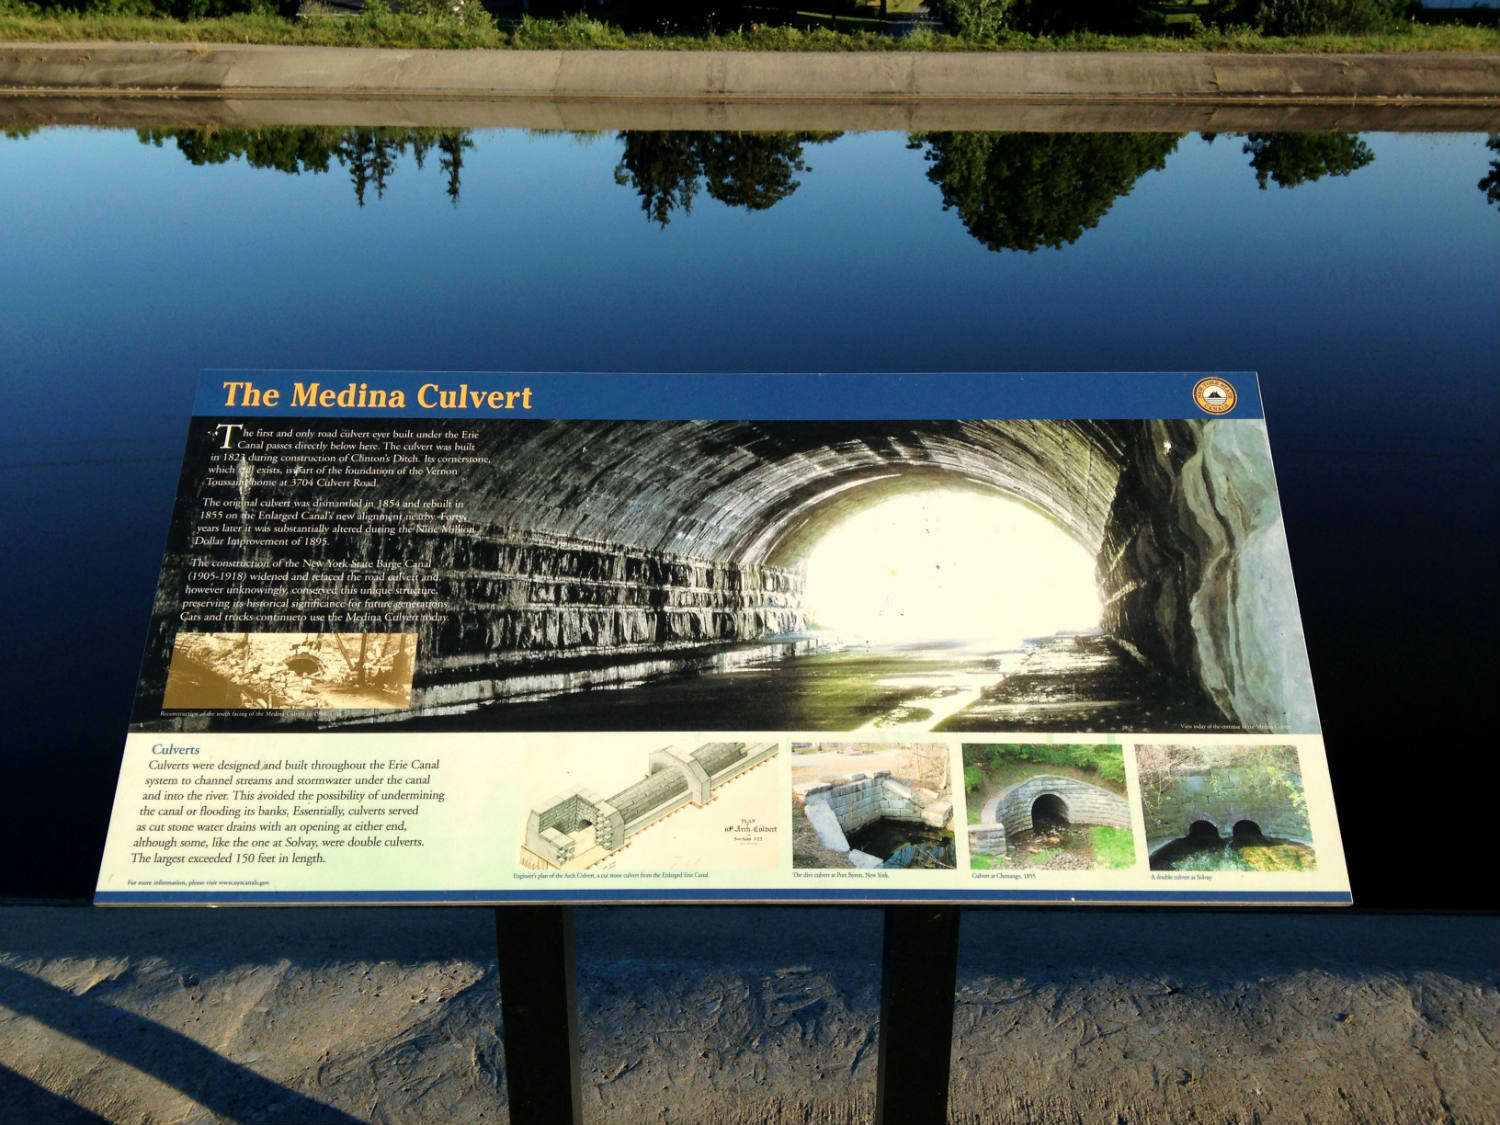 The Medina Culvert - Medina, NY - Sign on the Canal